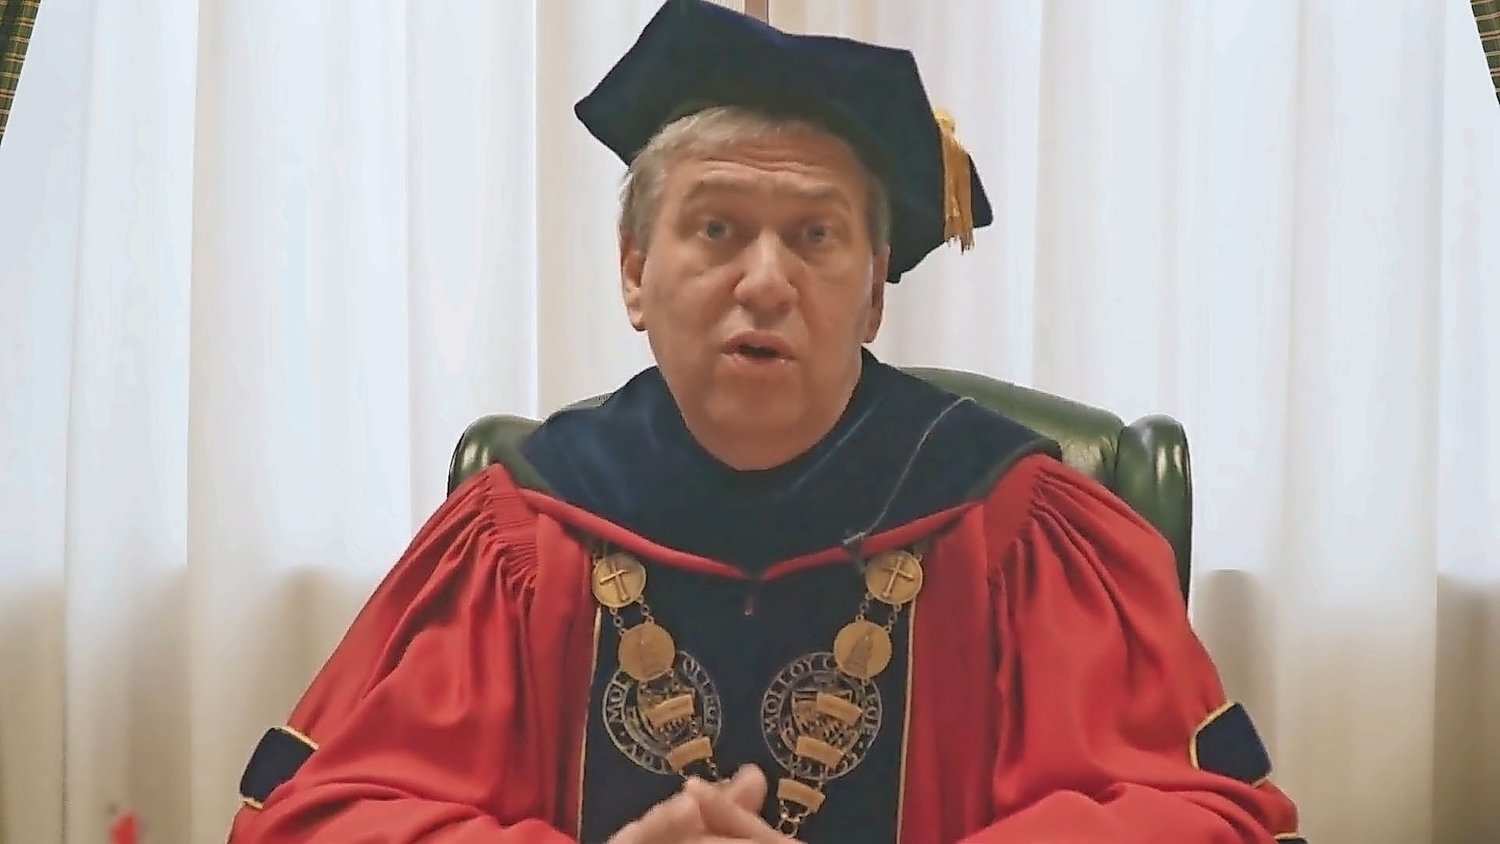 Dr. Drew Bogner, outgoing Molloy College president, gave his final commencement address in a pre-recorded video that was livestreamed during the virtual ceremony on Monday.